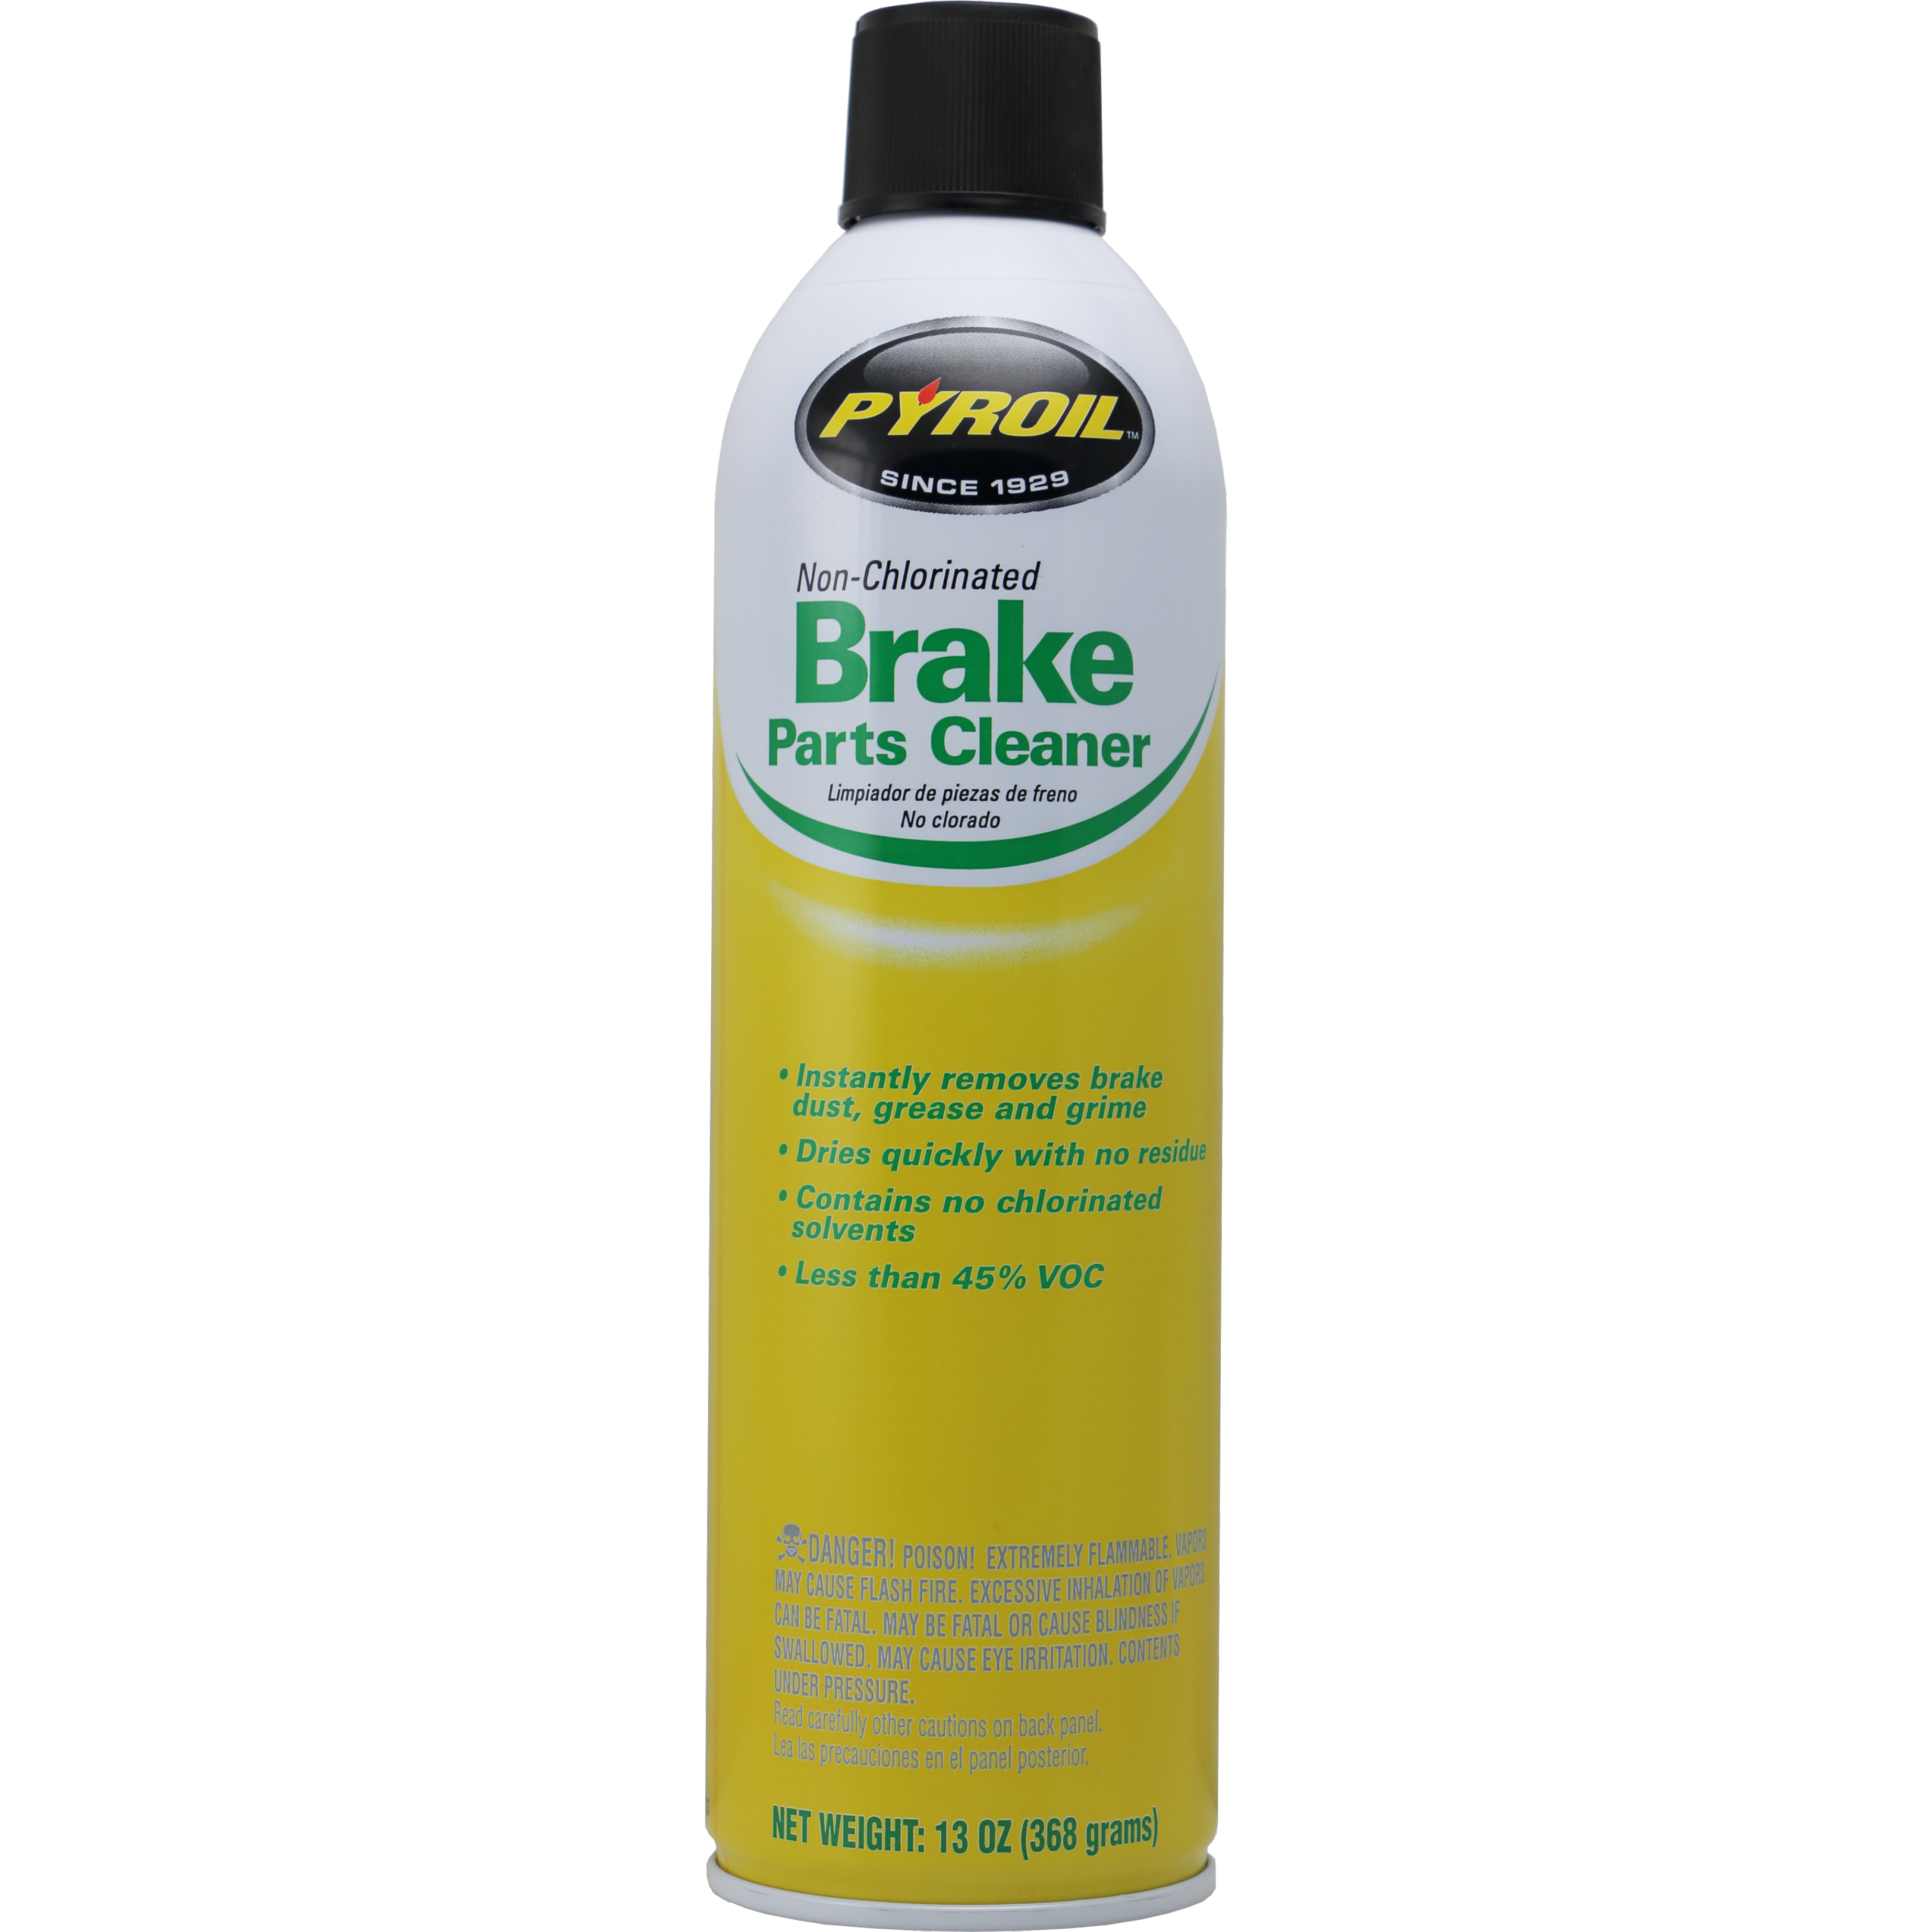 Pyroil NonChlorinated Low VOC Brake Parts Cleaner Brake